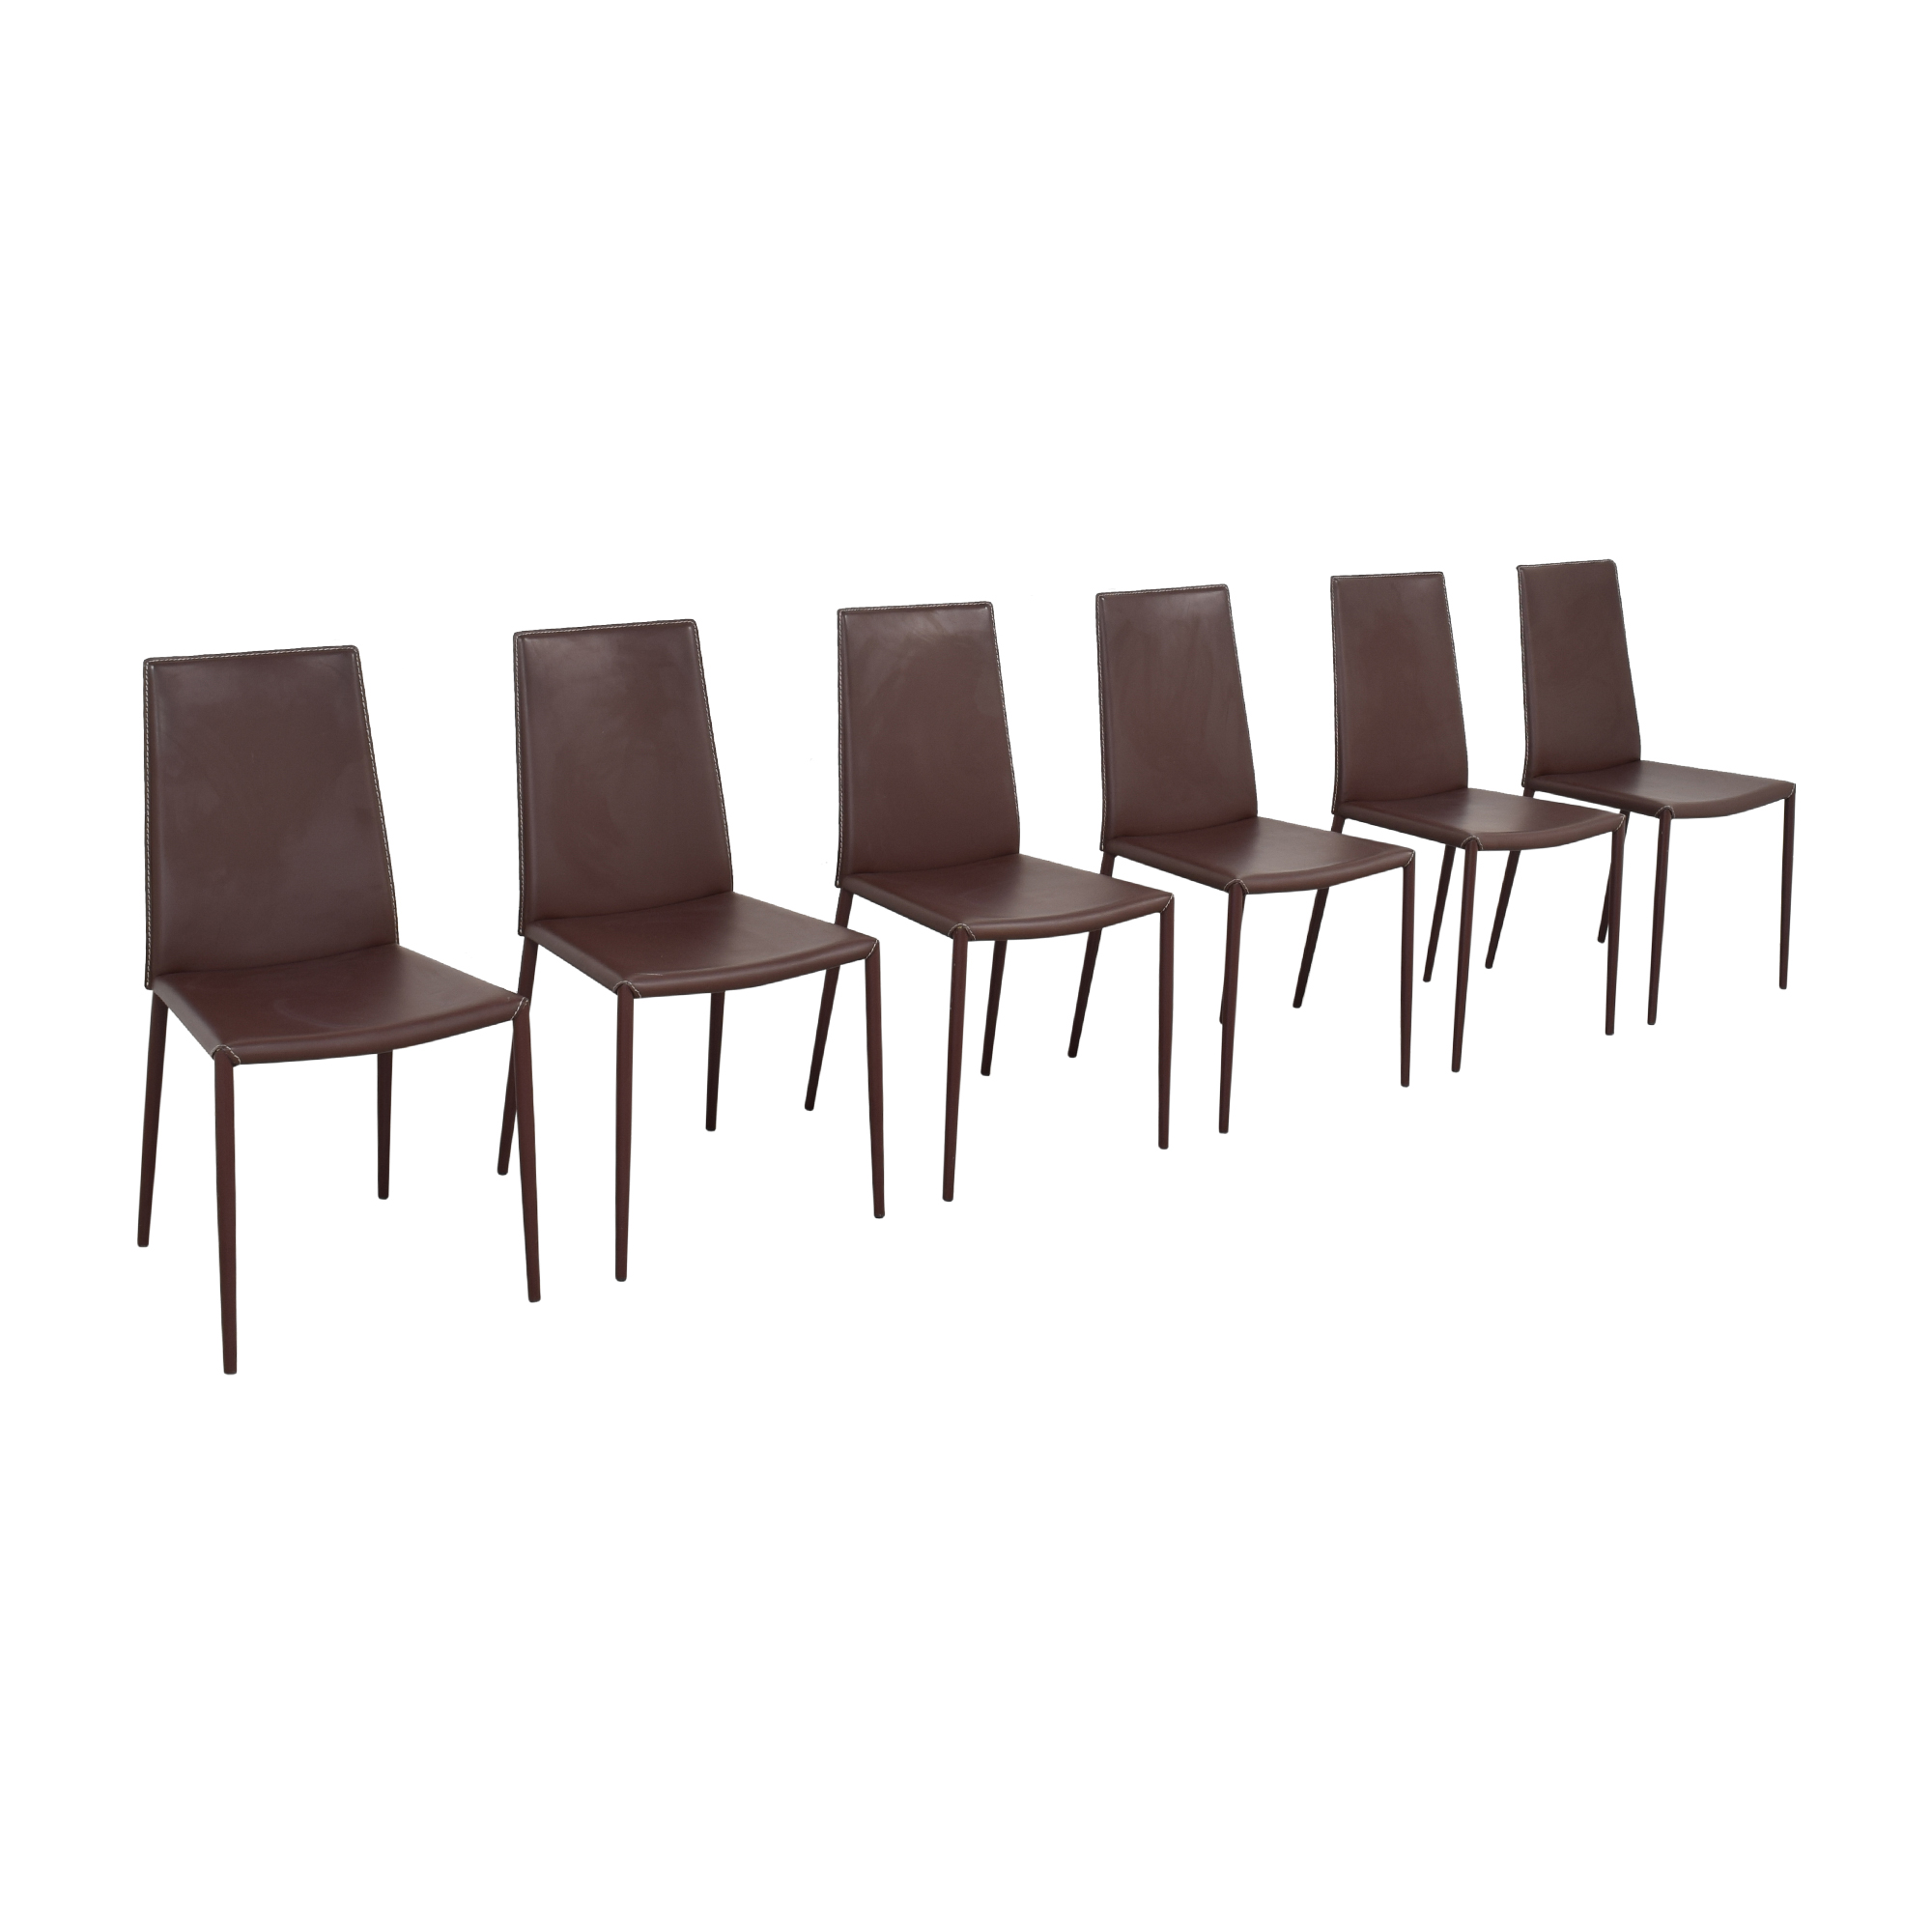 Calligaris Boheme by Connubia Dining Chairs Calligaris